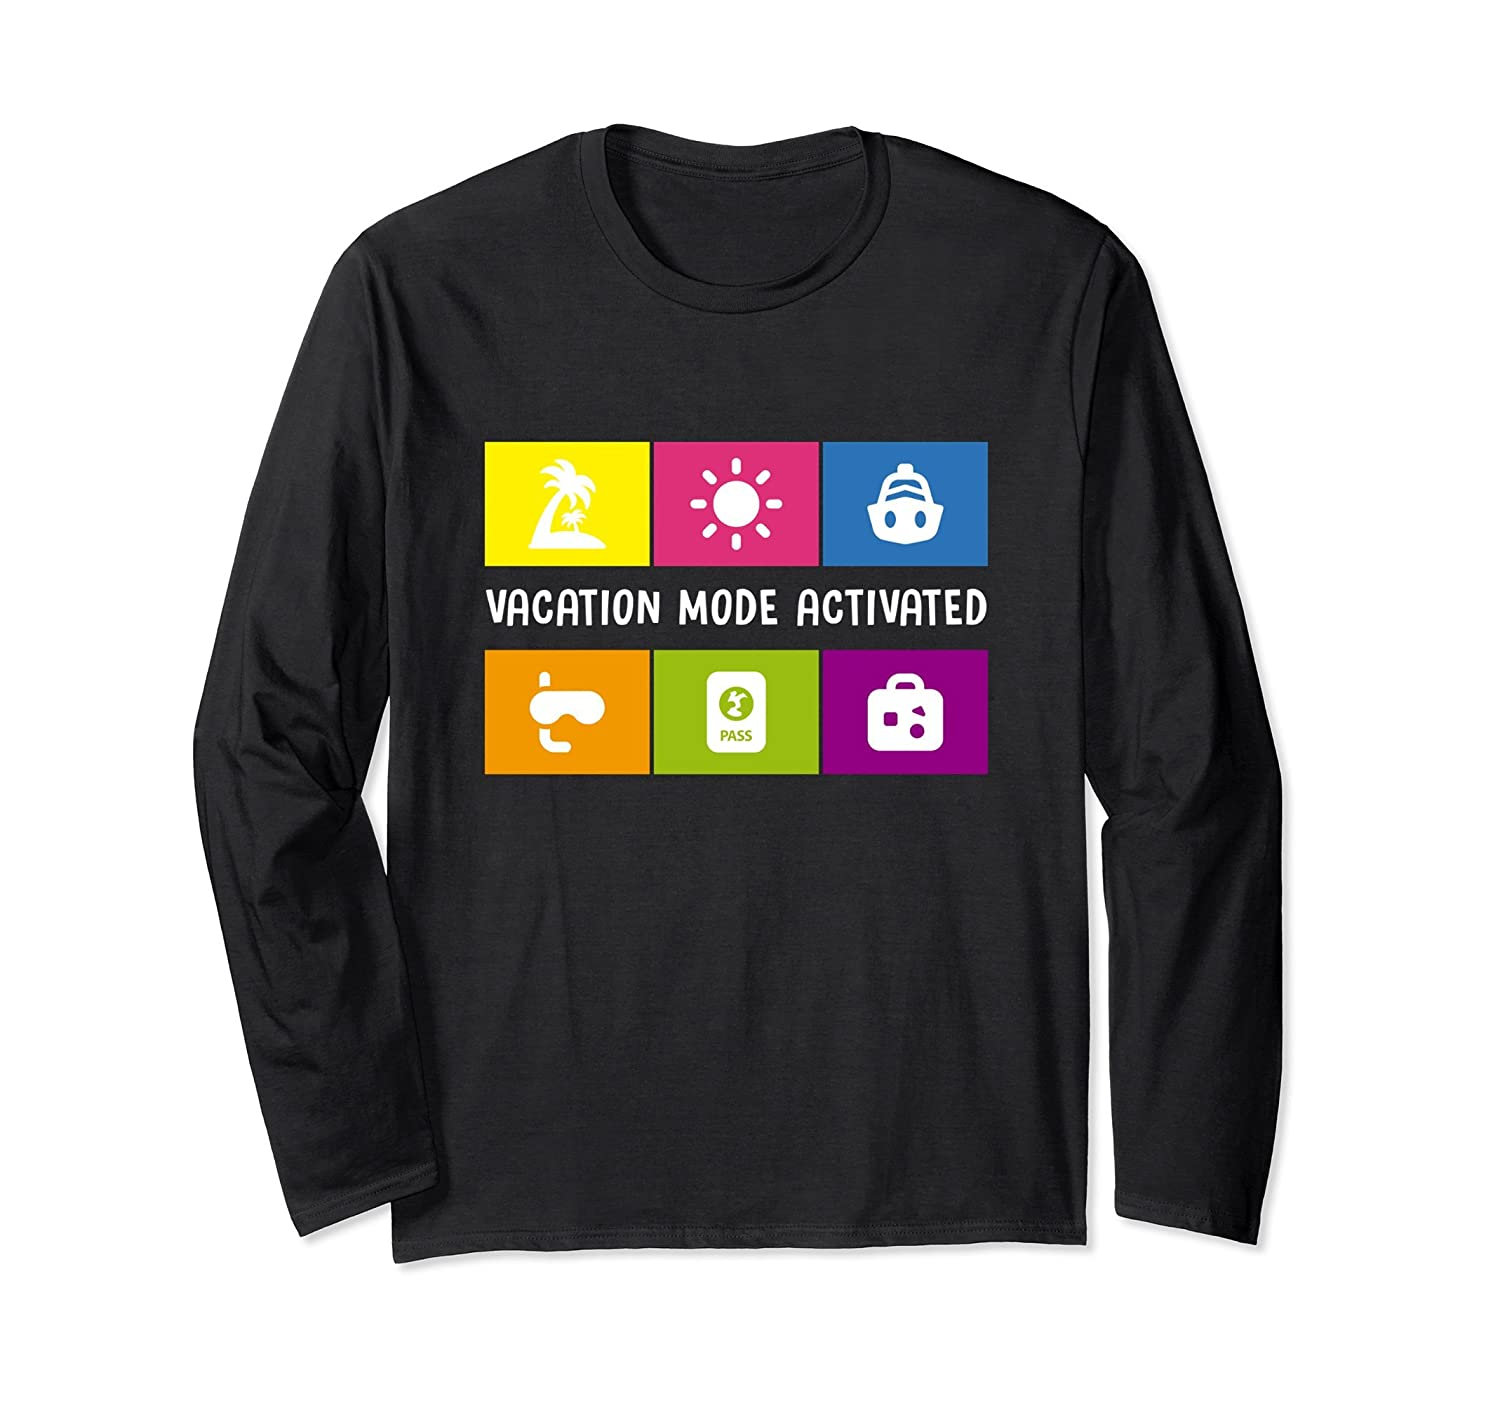 Funny Vacation Mode Activated Summer Long Sleeve Sdu